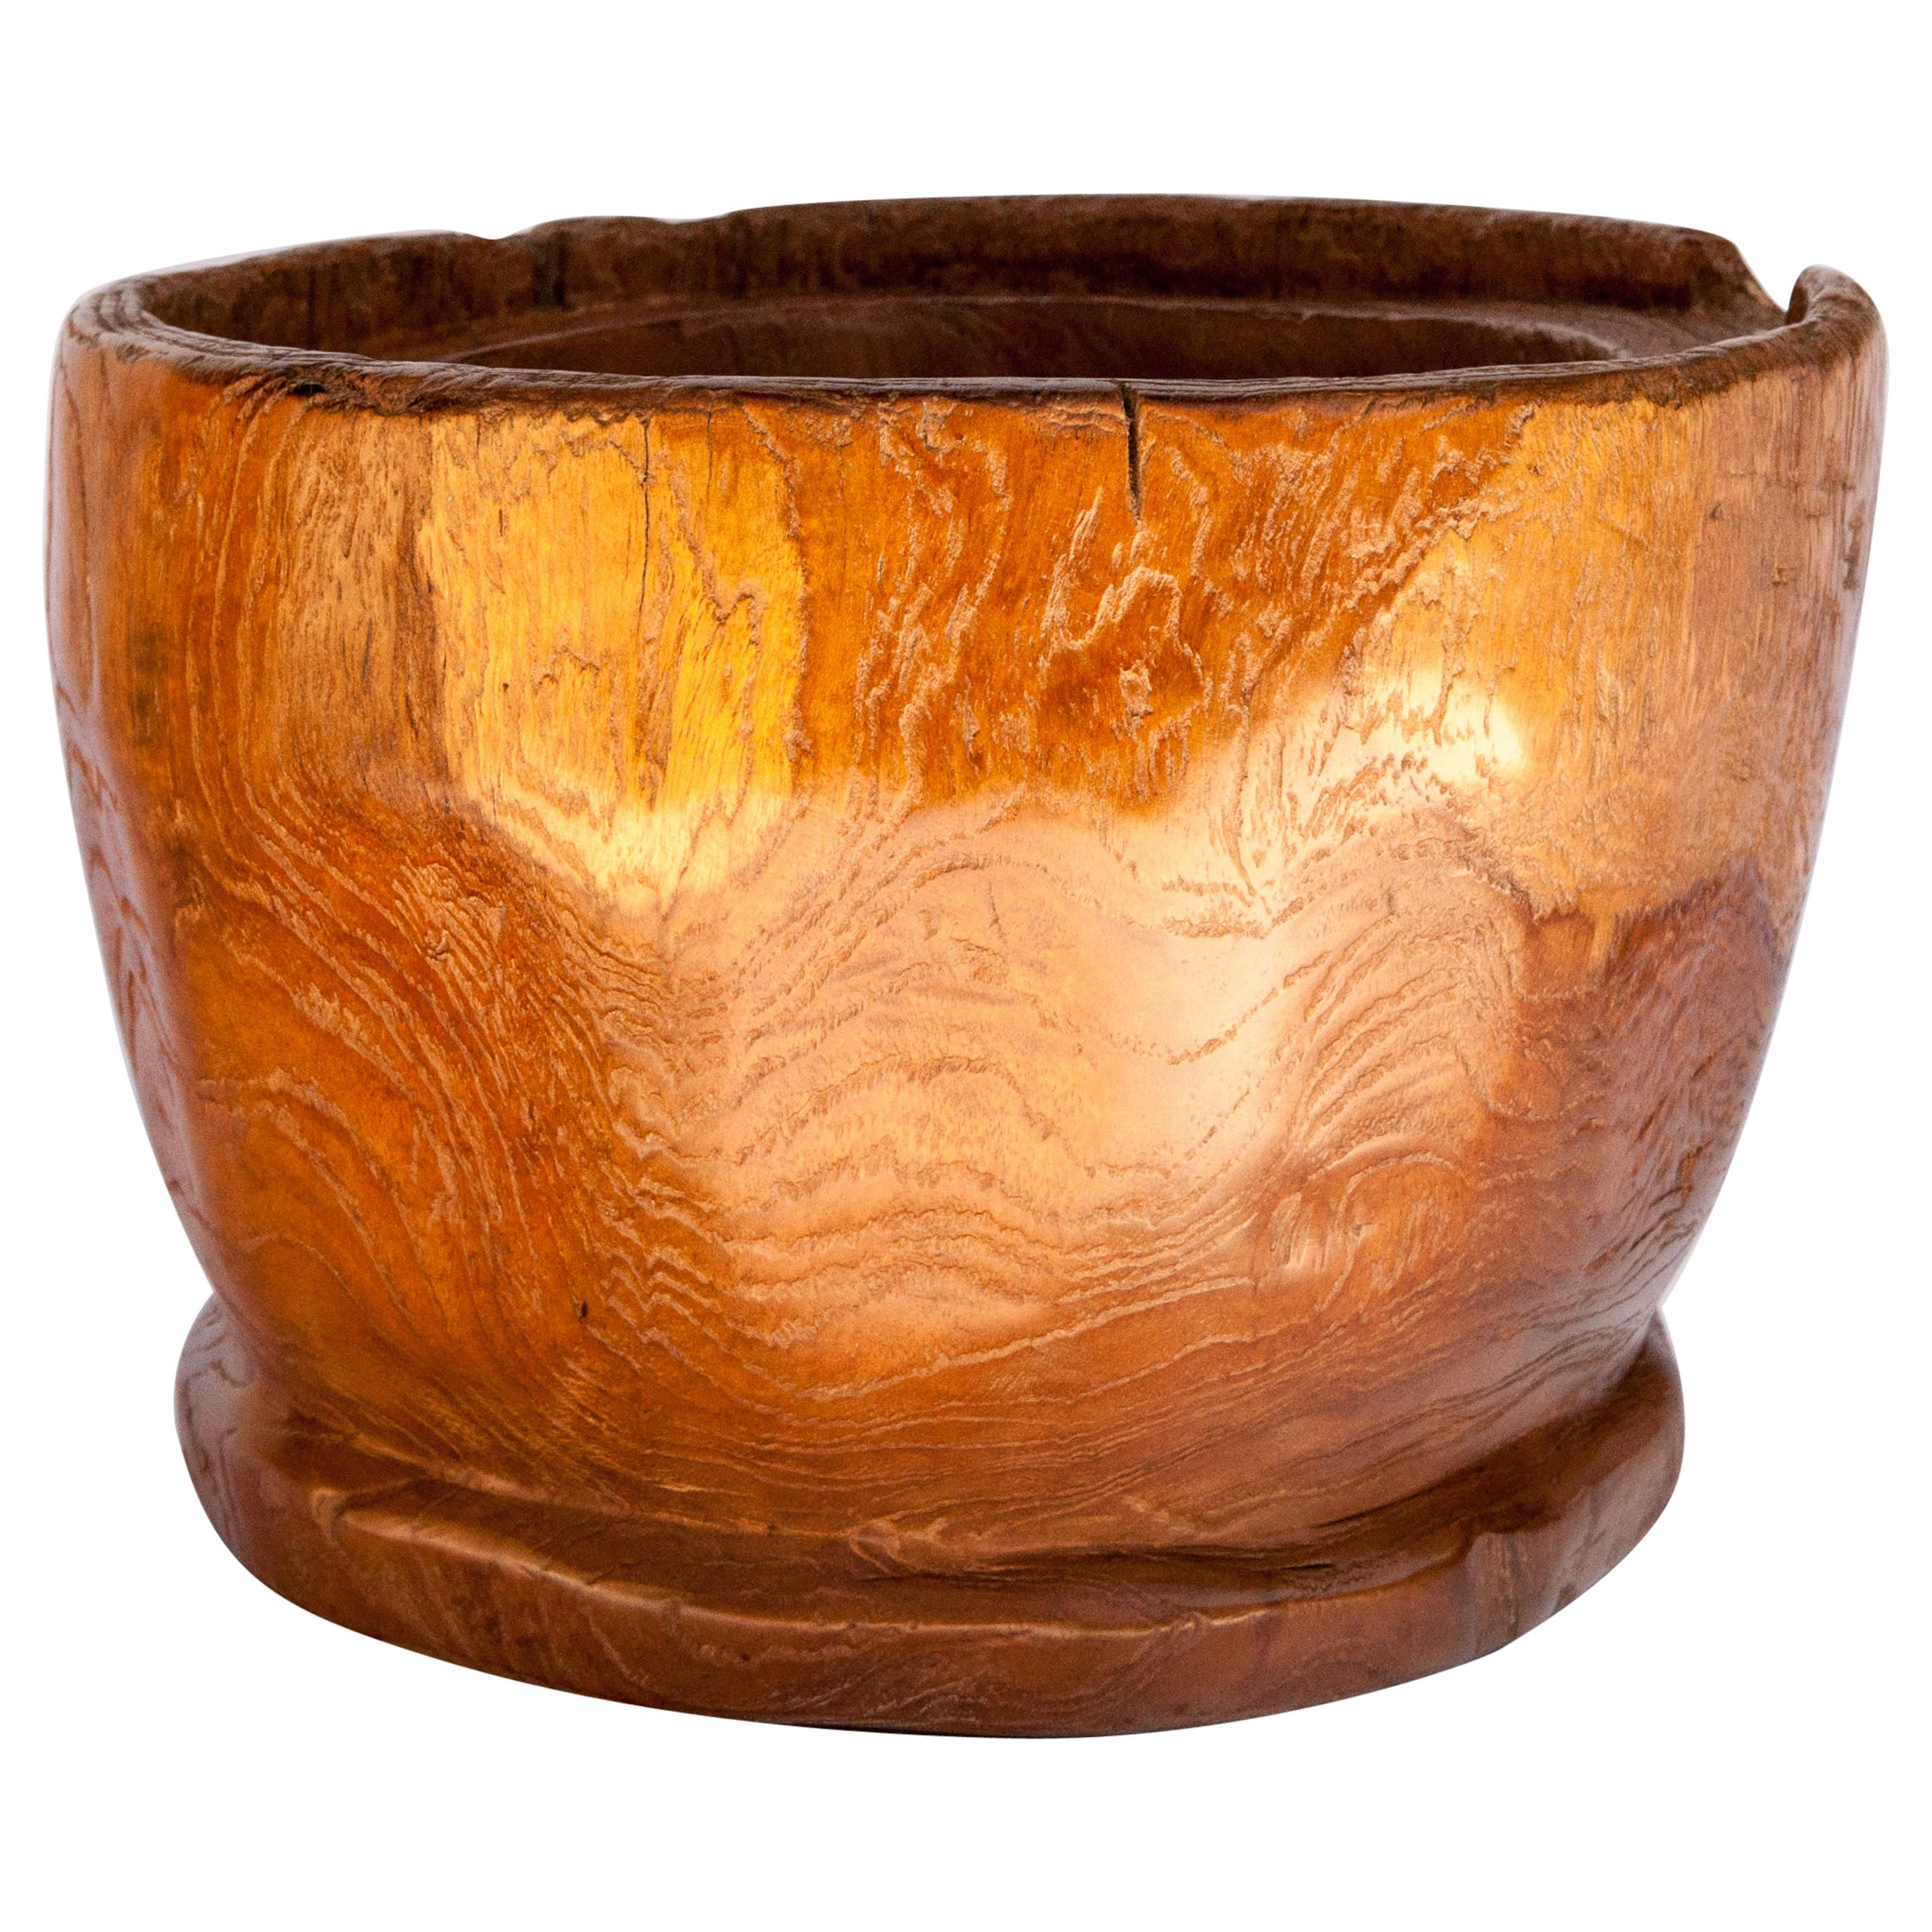 Teak Tabletop Planter or Bowl from an Old Mortar, Indonesia, Late 20th Century